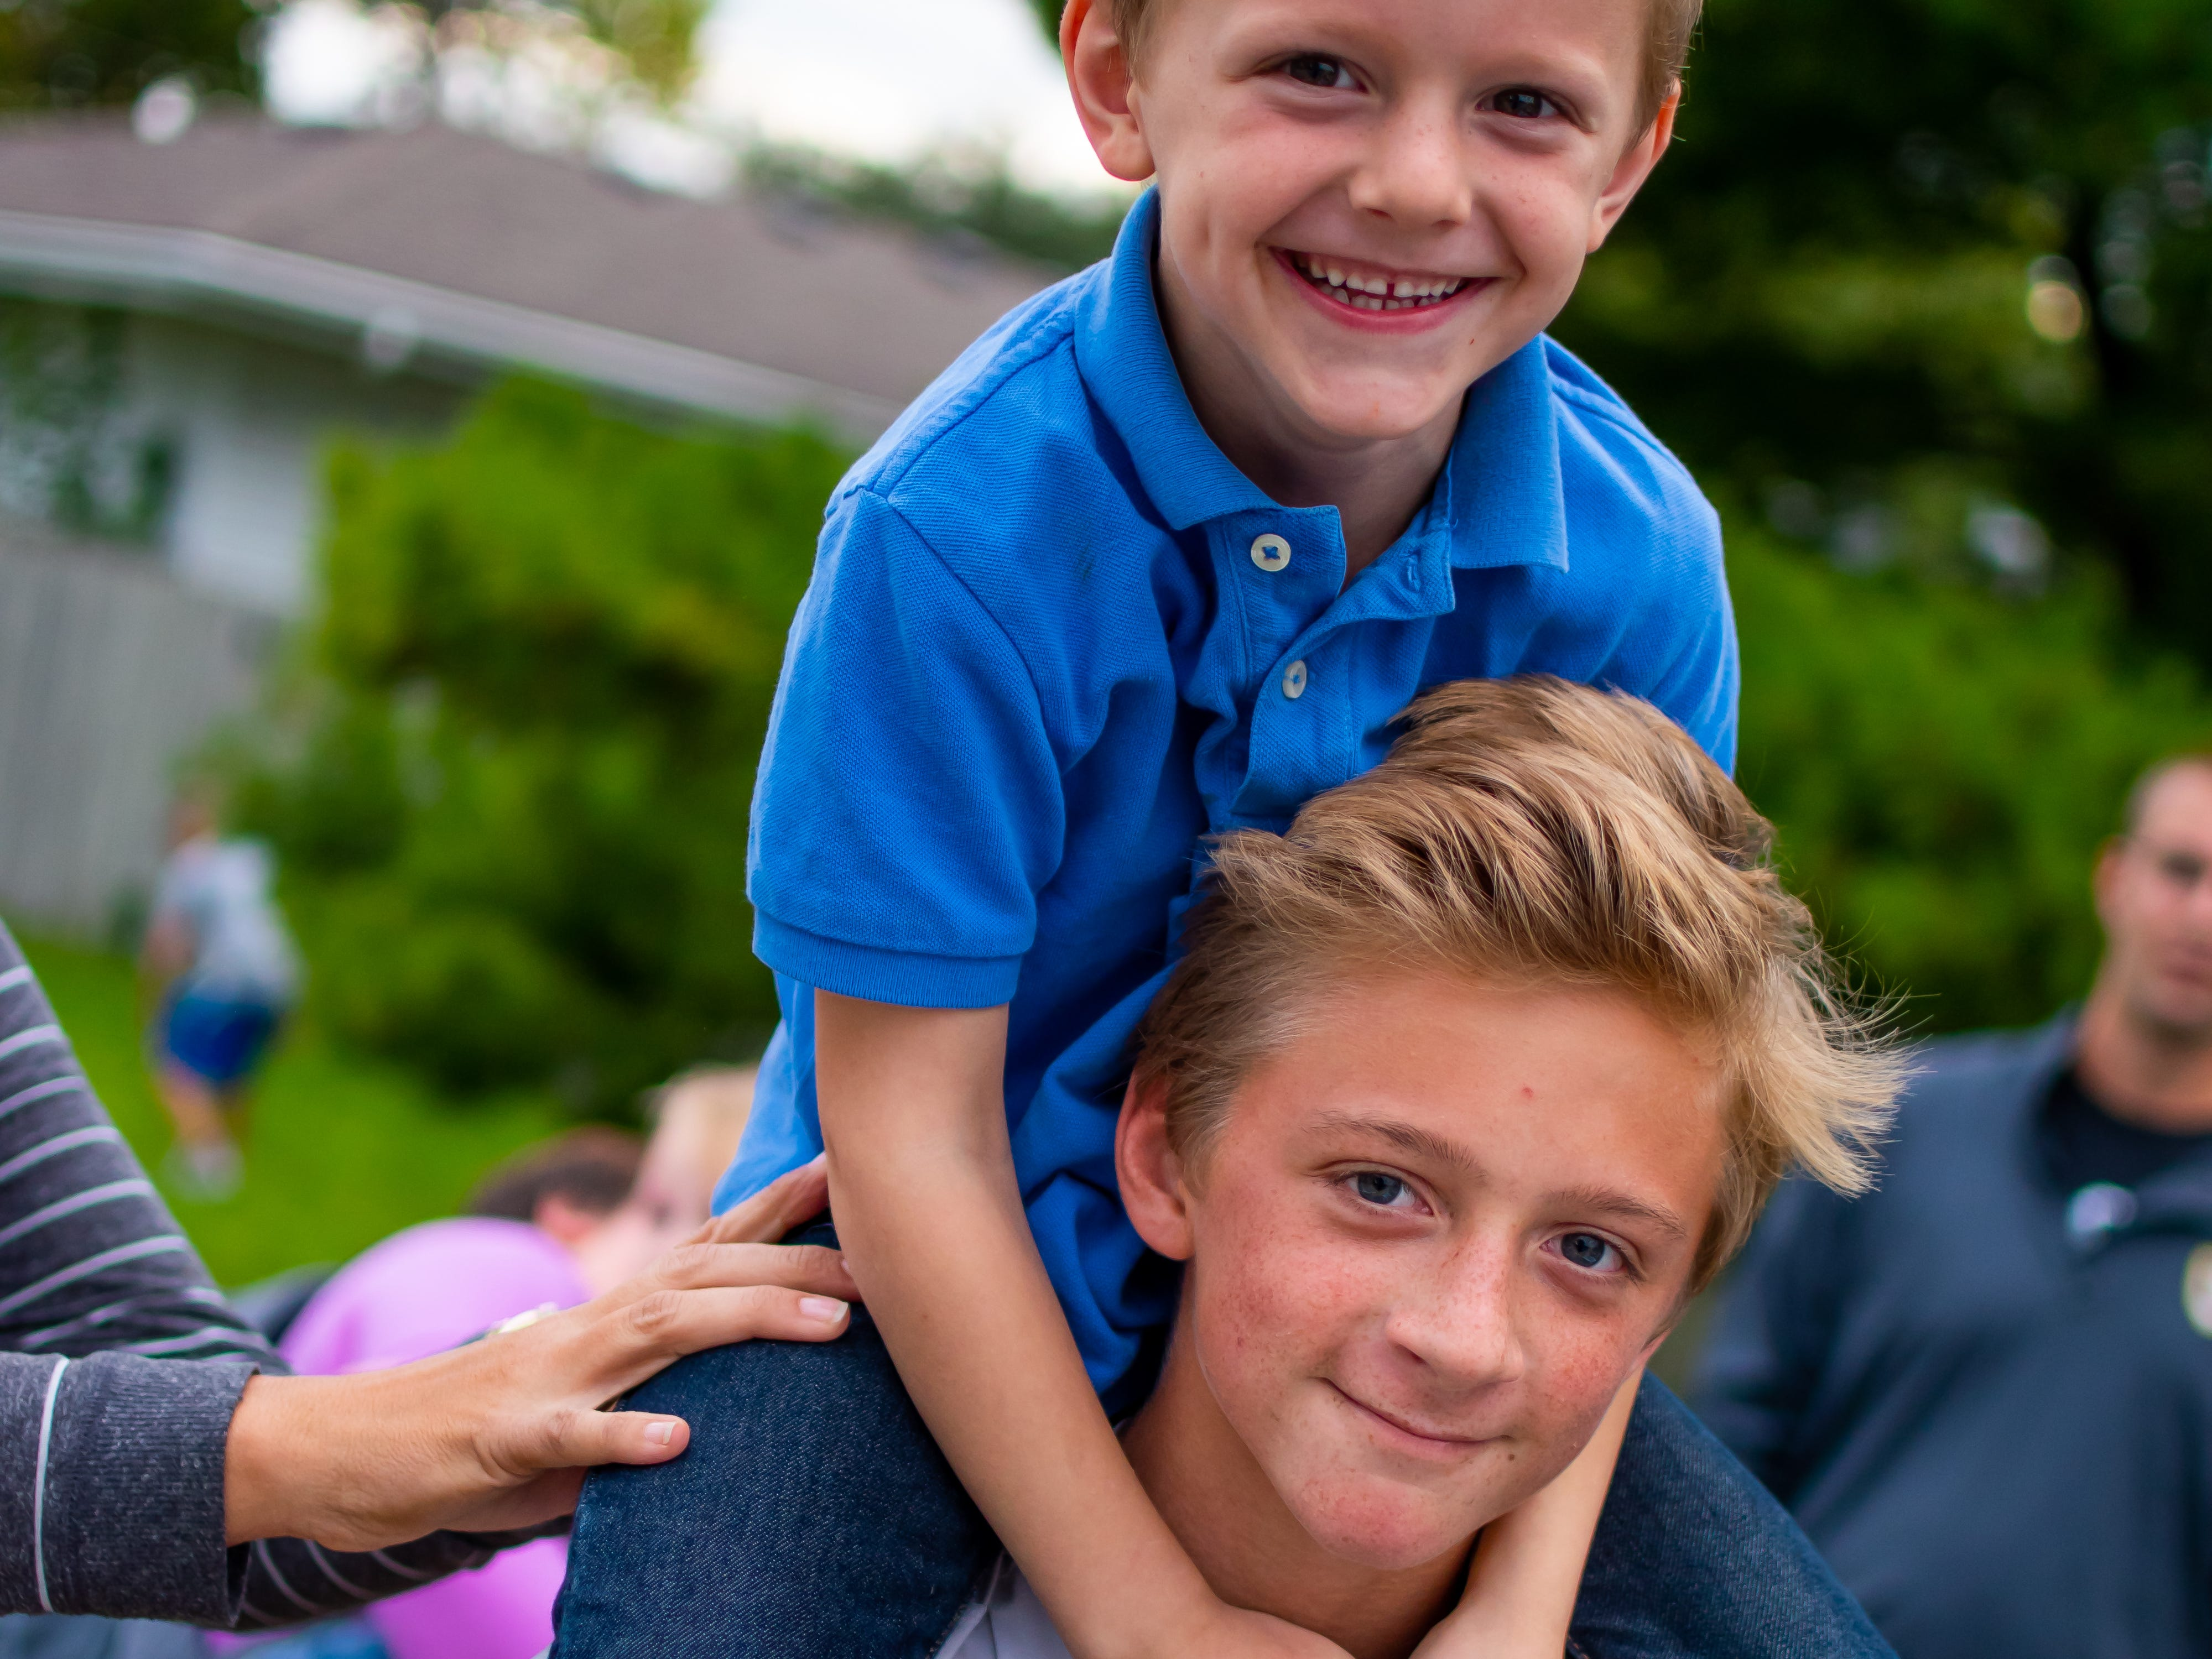 Everett, 4, and Andrew Fleming, 13, both of Waukee wait  for the Waukee Homecoming Parade on Thursday, September 27, 2018 in Waukee.